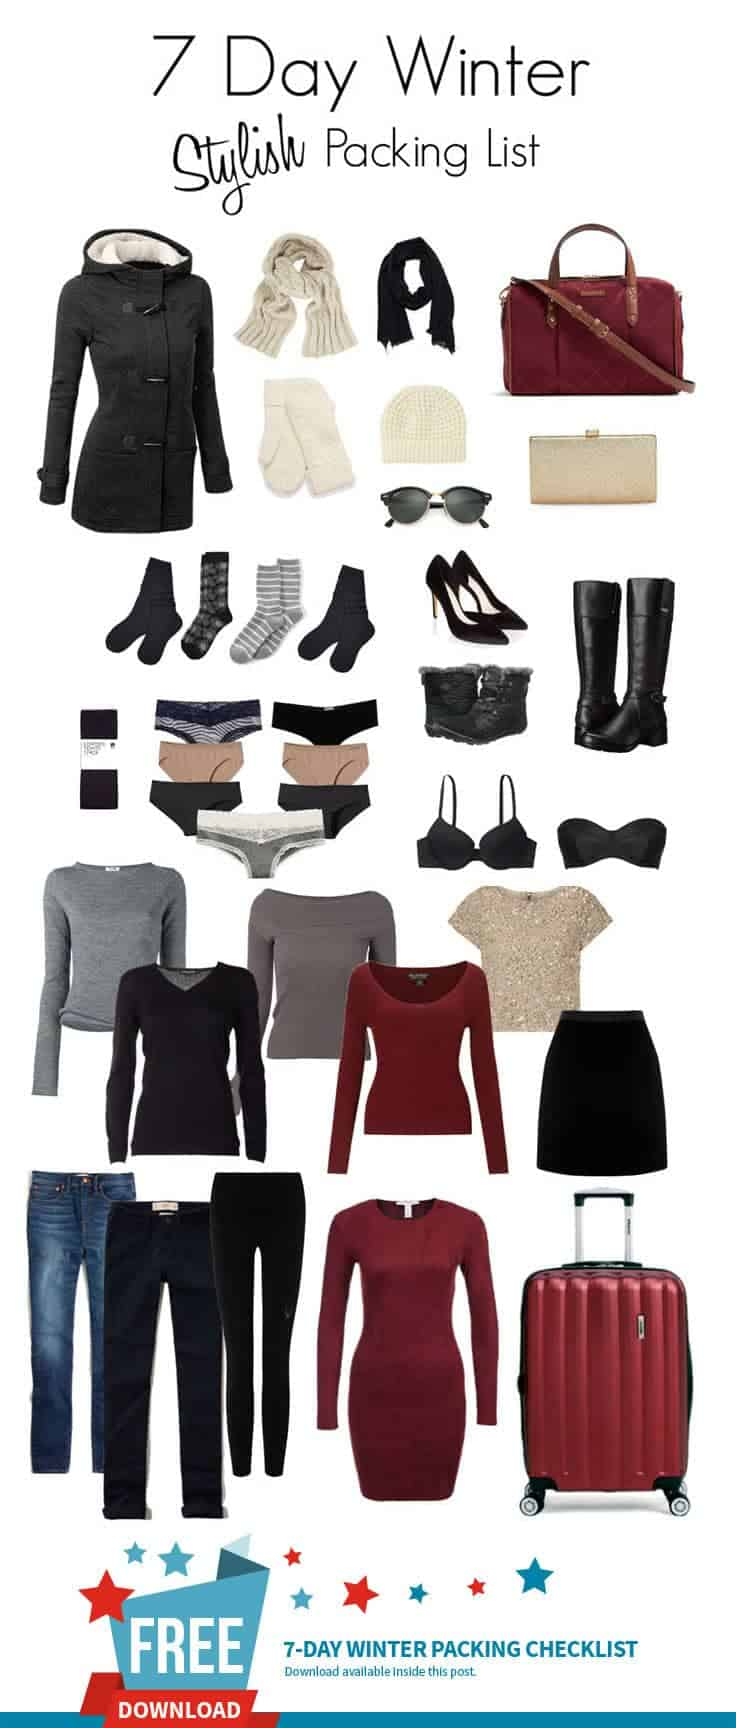 Suitcase must-have items